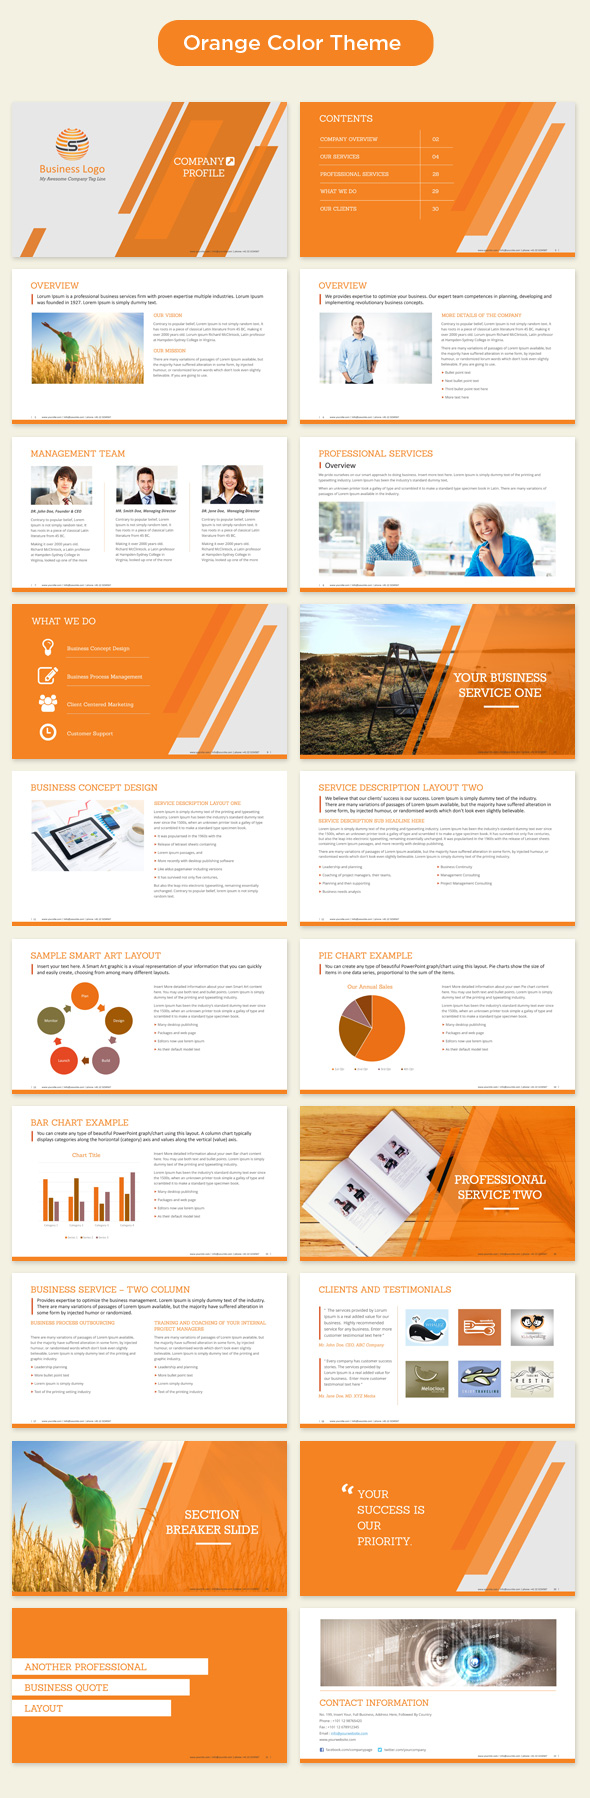 Company Profile PowerPoint Template - 350+ Master Slide Templates